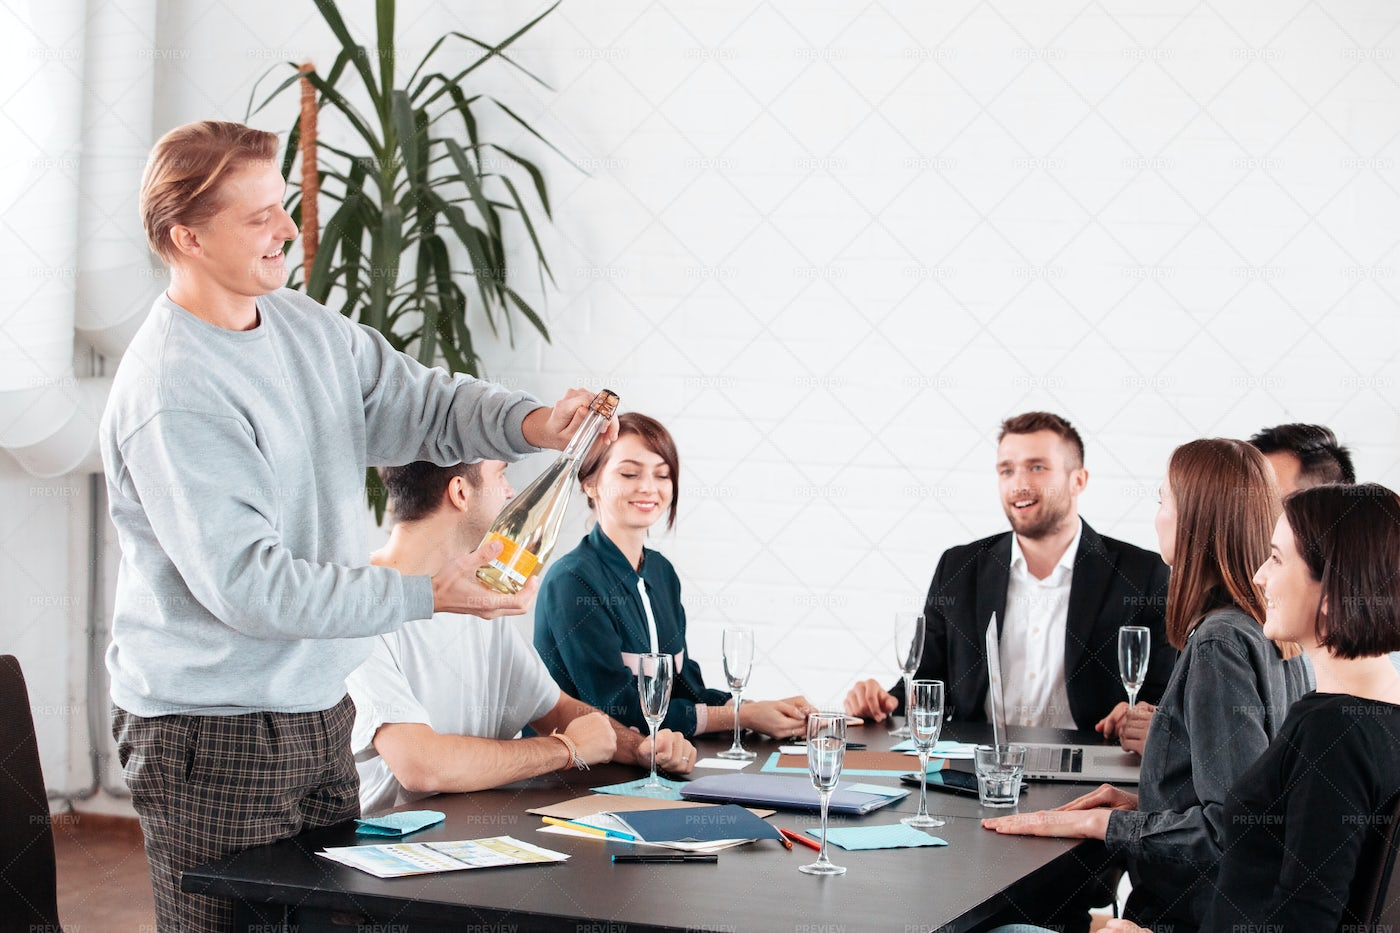 Champagne In Office Celebration: Stock Photos